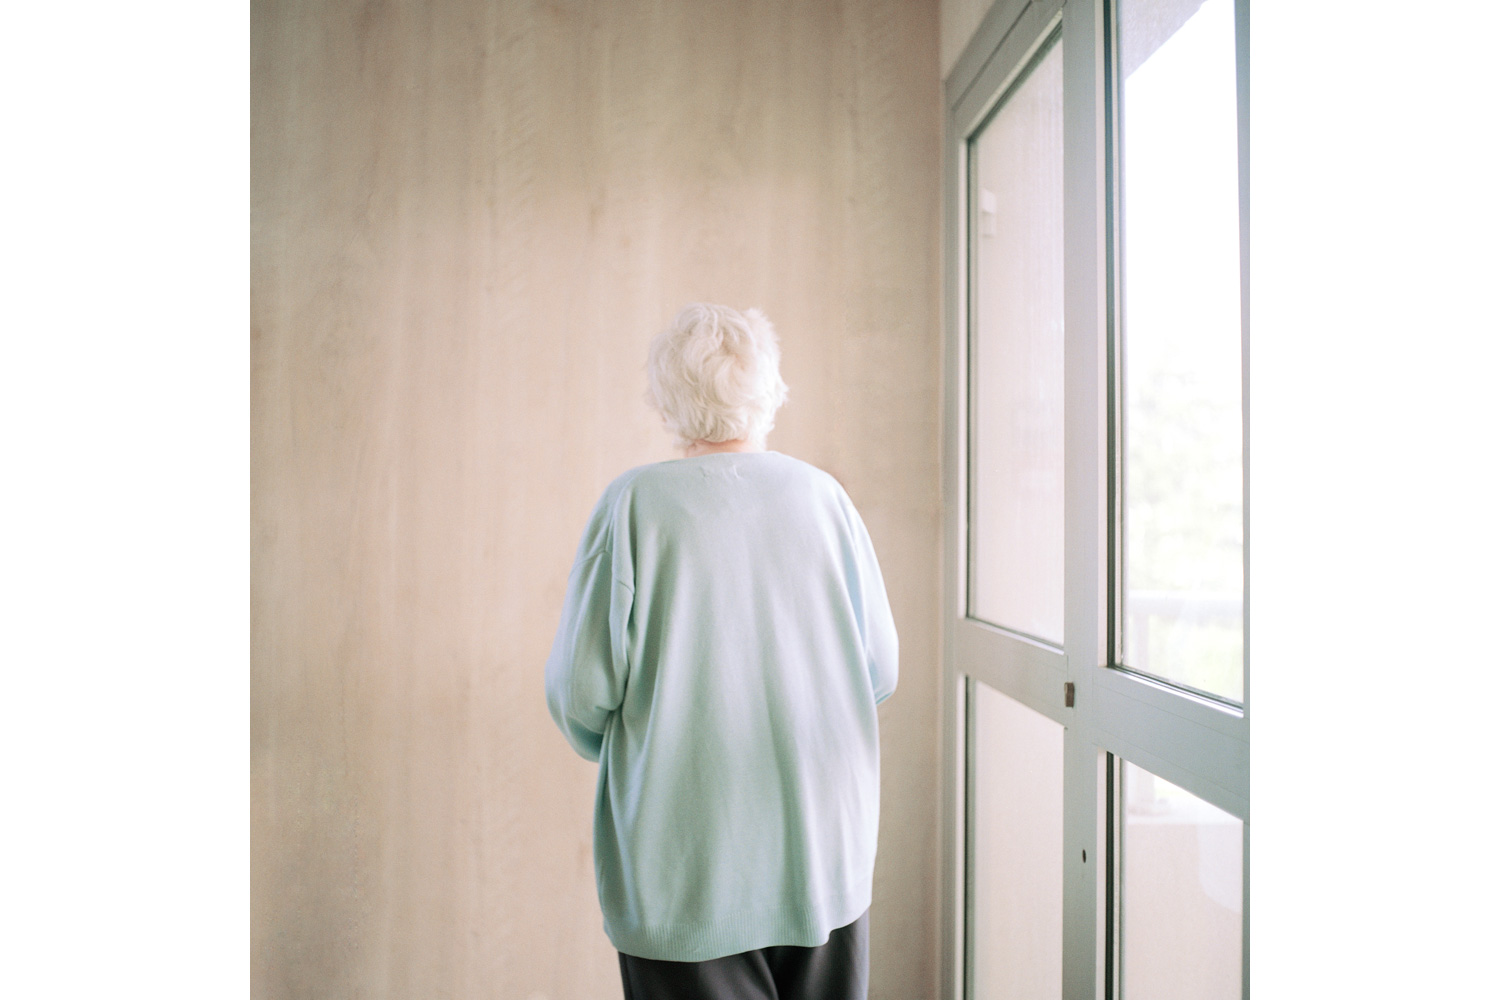 A resident stops in front of a wall in the Alzheimer's ward. A common symptom for Alzheimer's disease is sudden immobilization or fixation